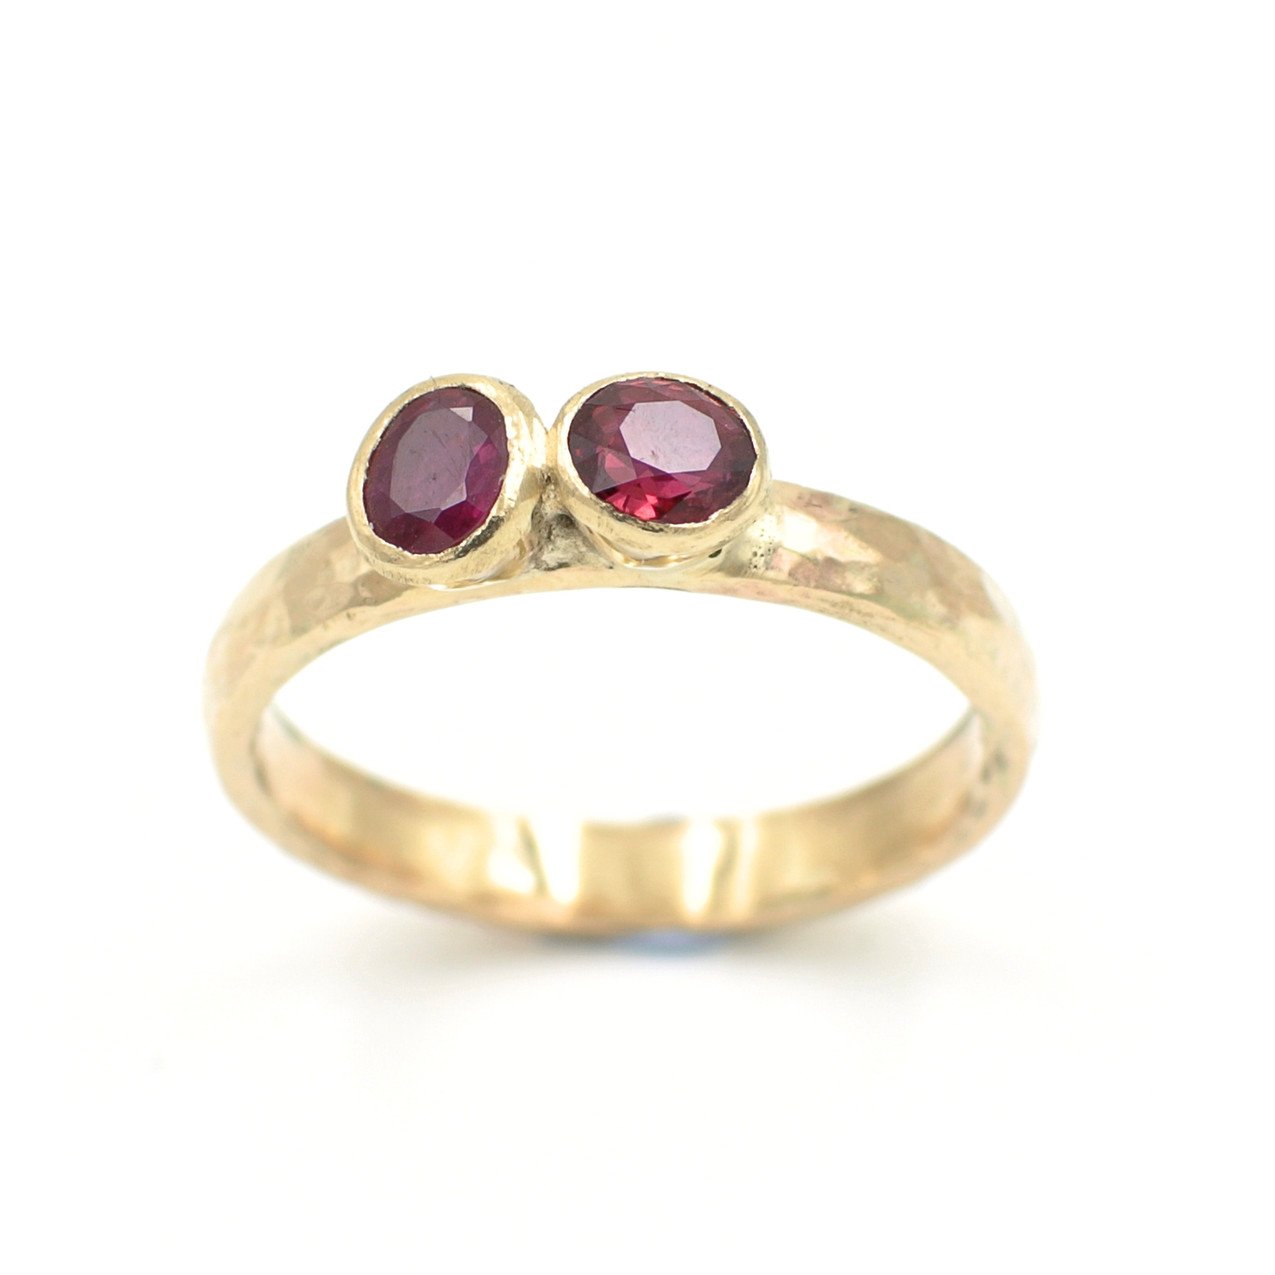 The finished piece, a remodelled ring using original ruby stones.